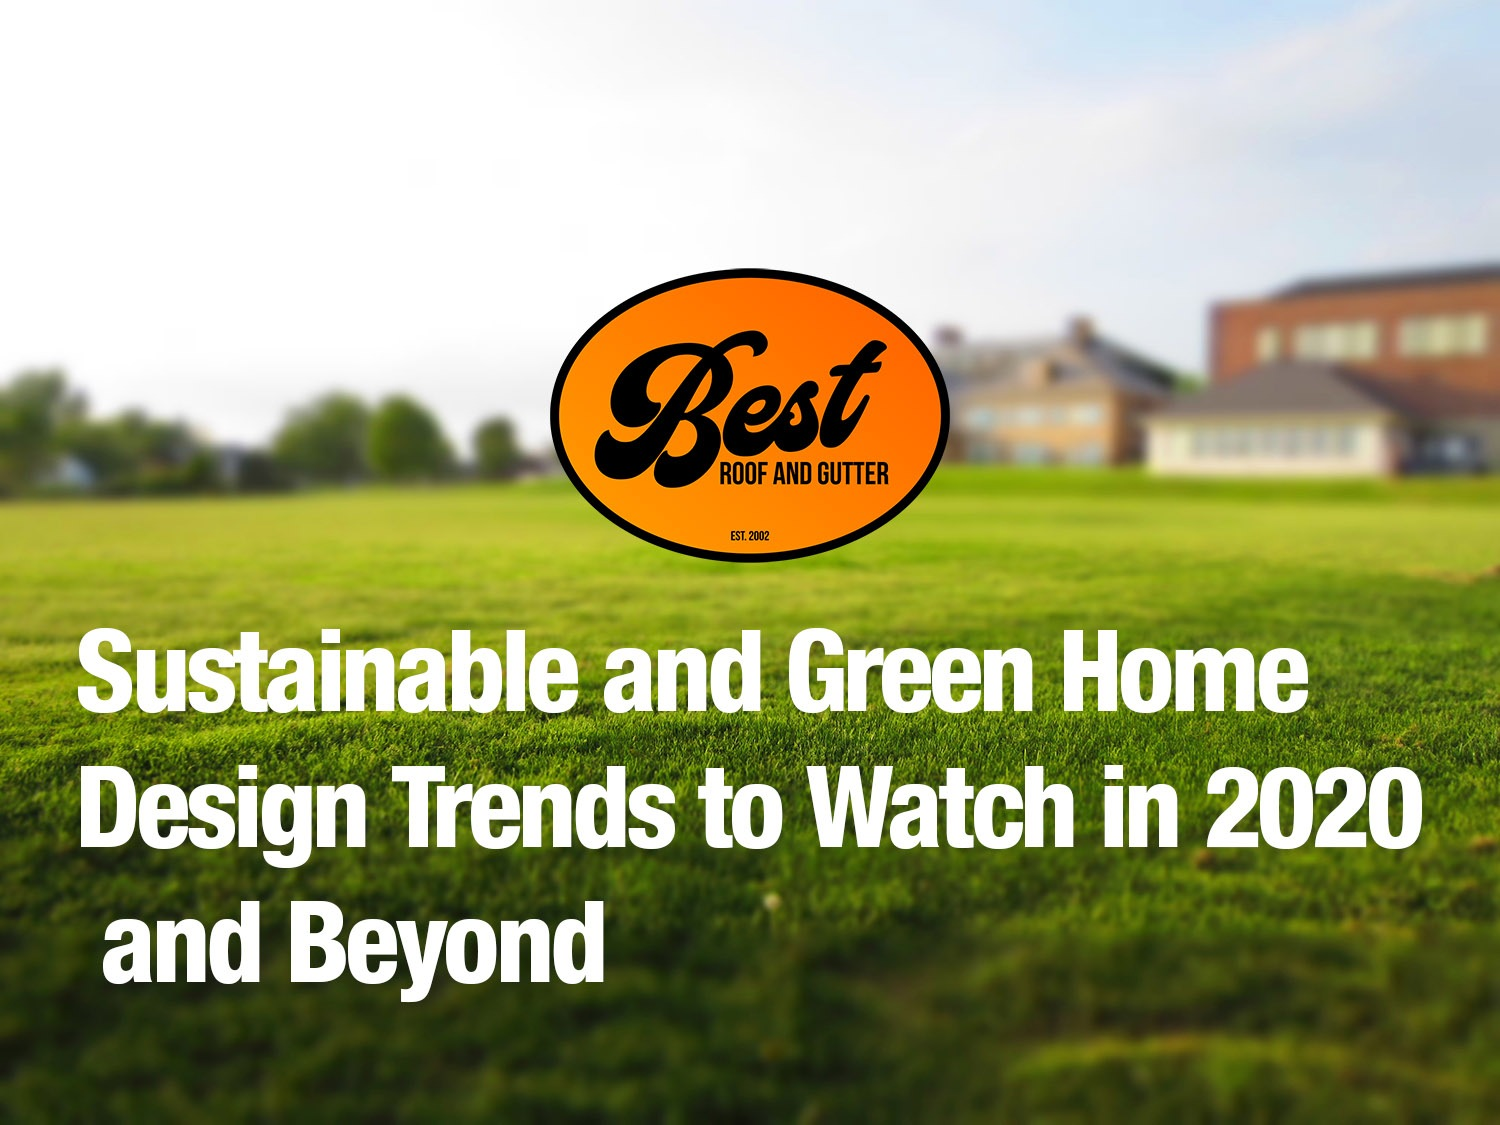 Sustainable and Green Home Design Trends to Watch in 2020 and Beyond